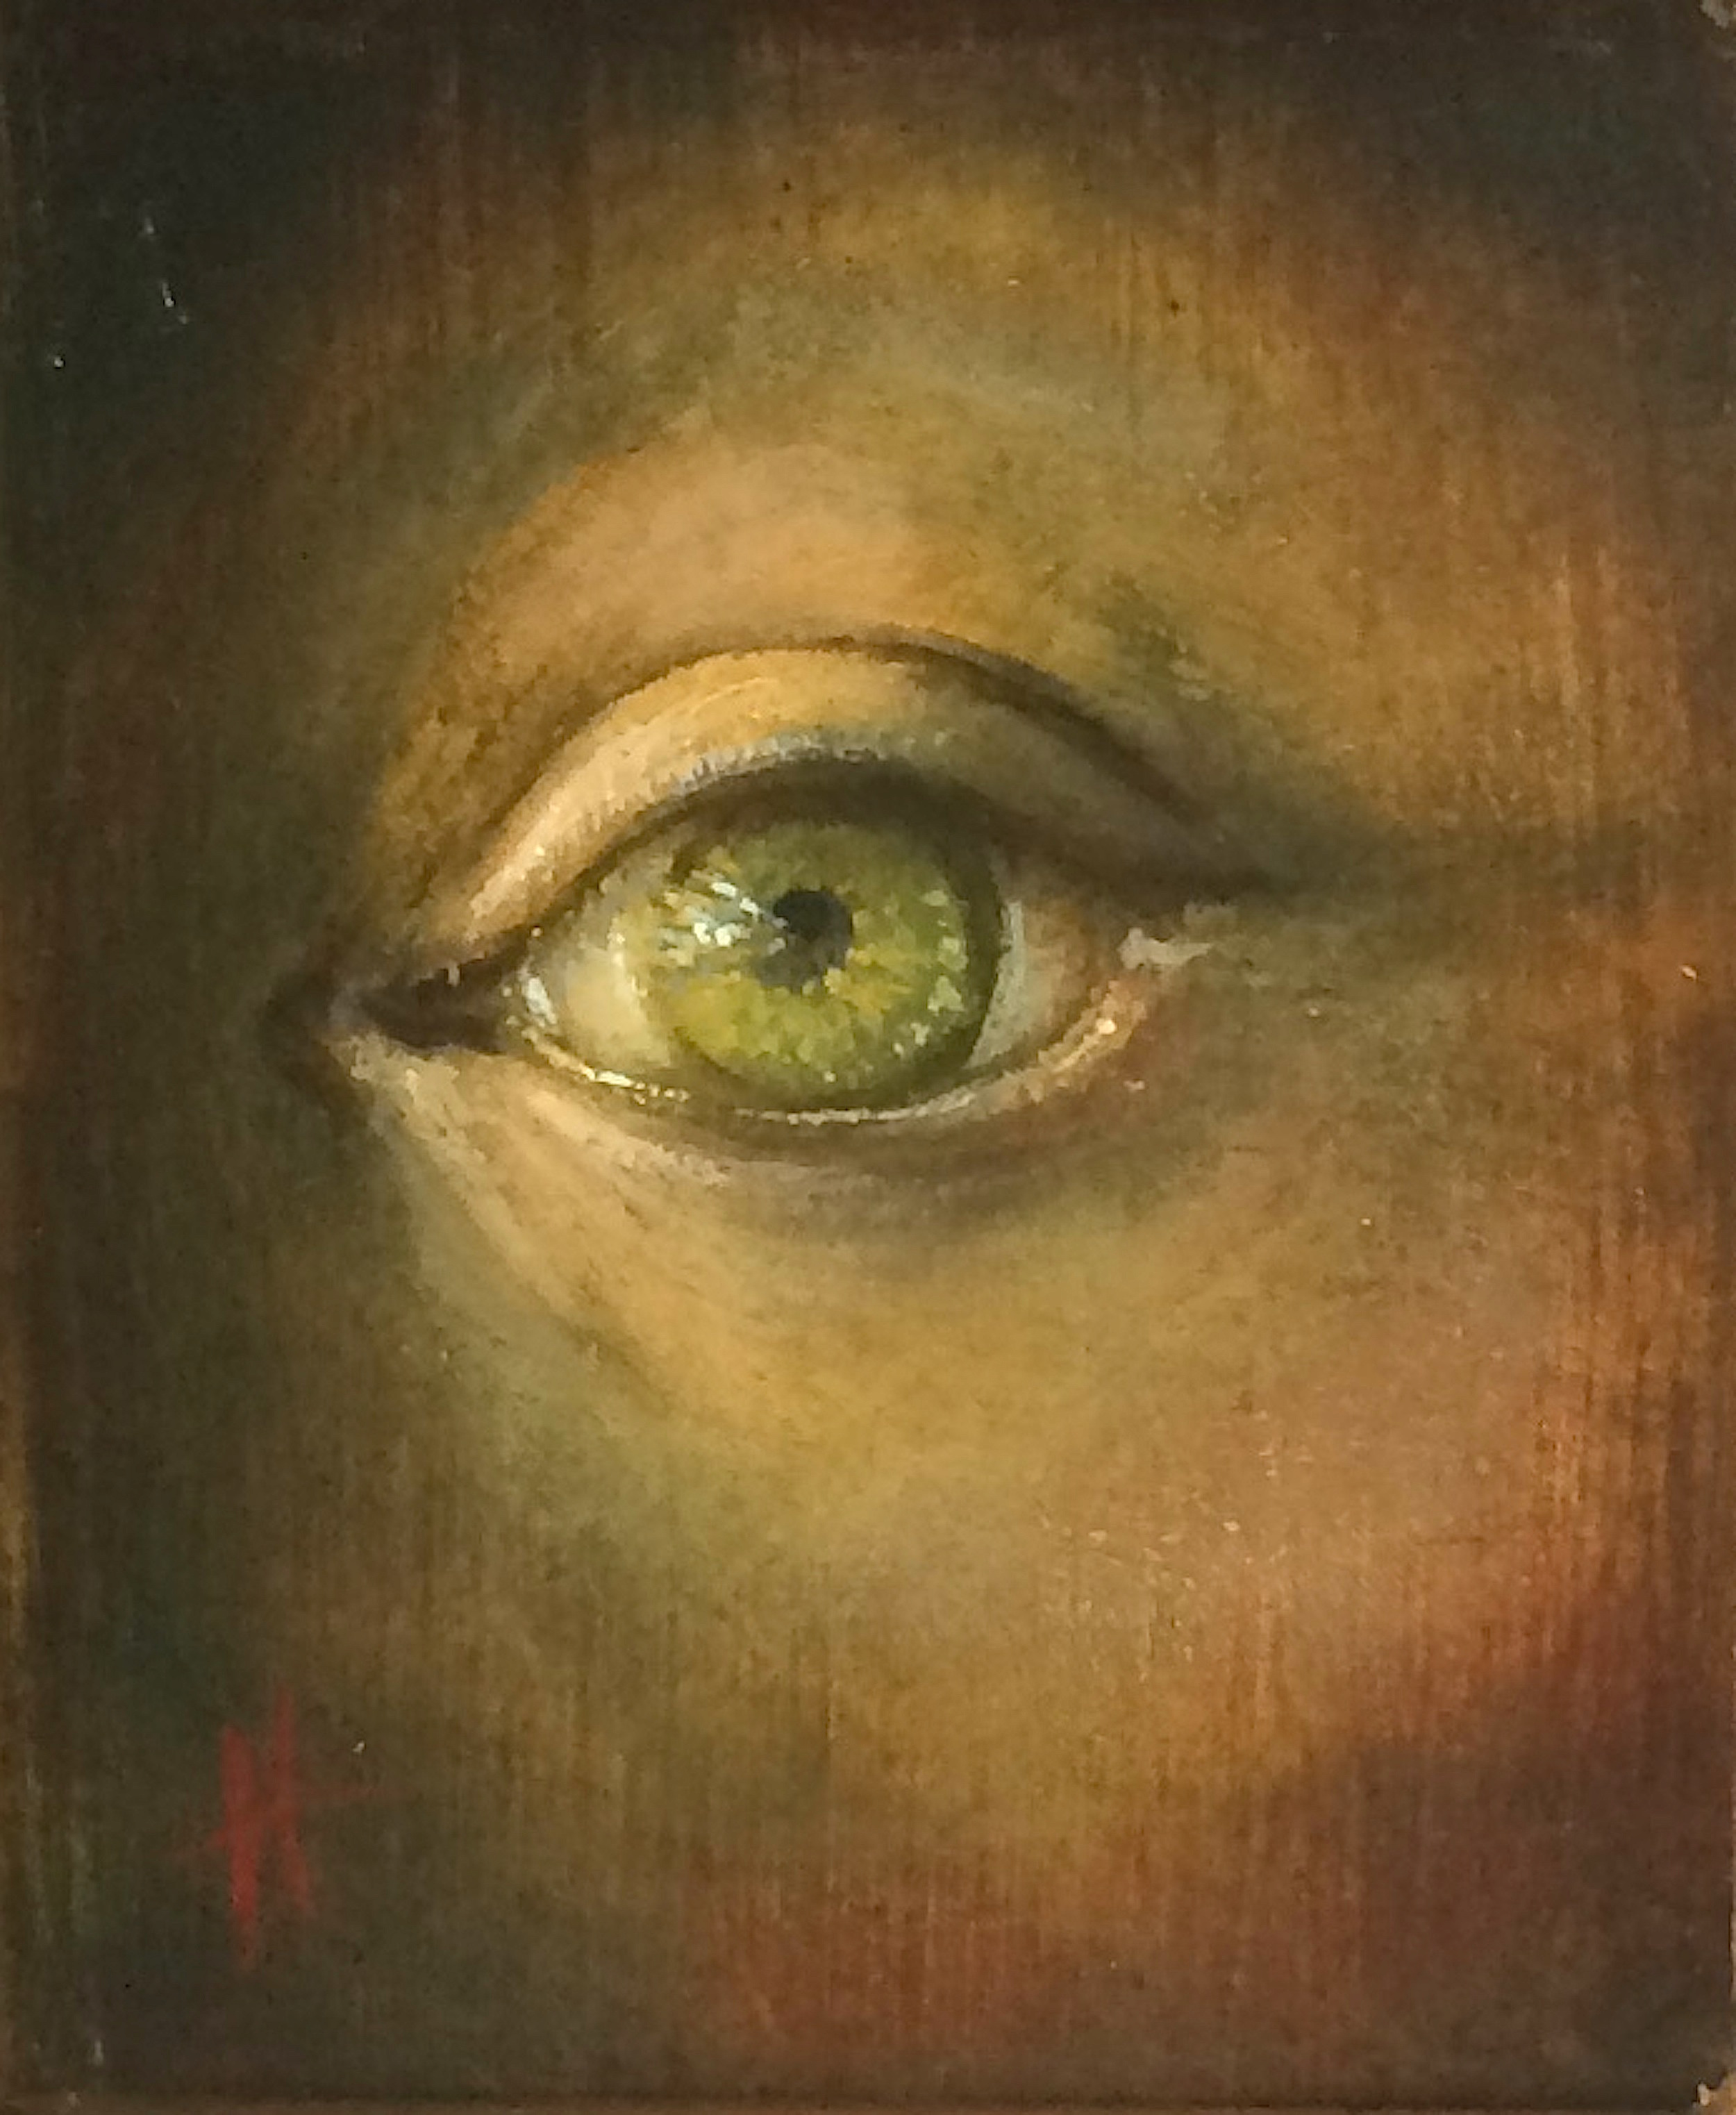 Title: Study for Eye  Size: 11.5 x 9 cm  Medium: Oil on panel  SOLD